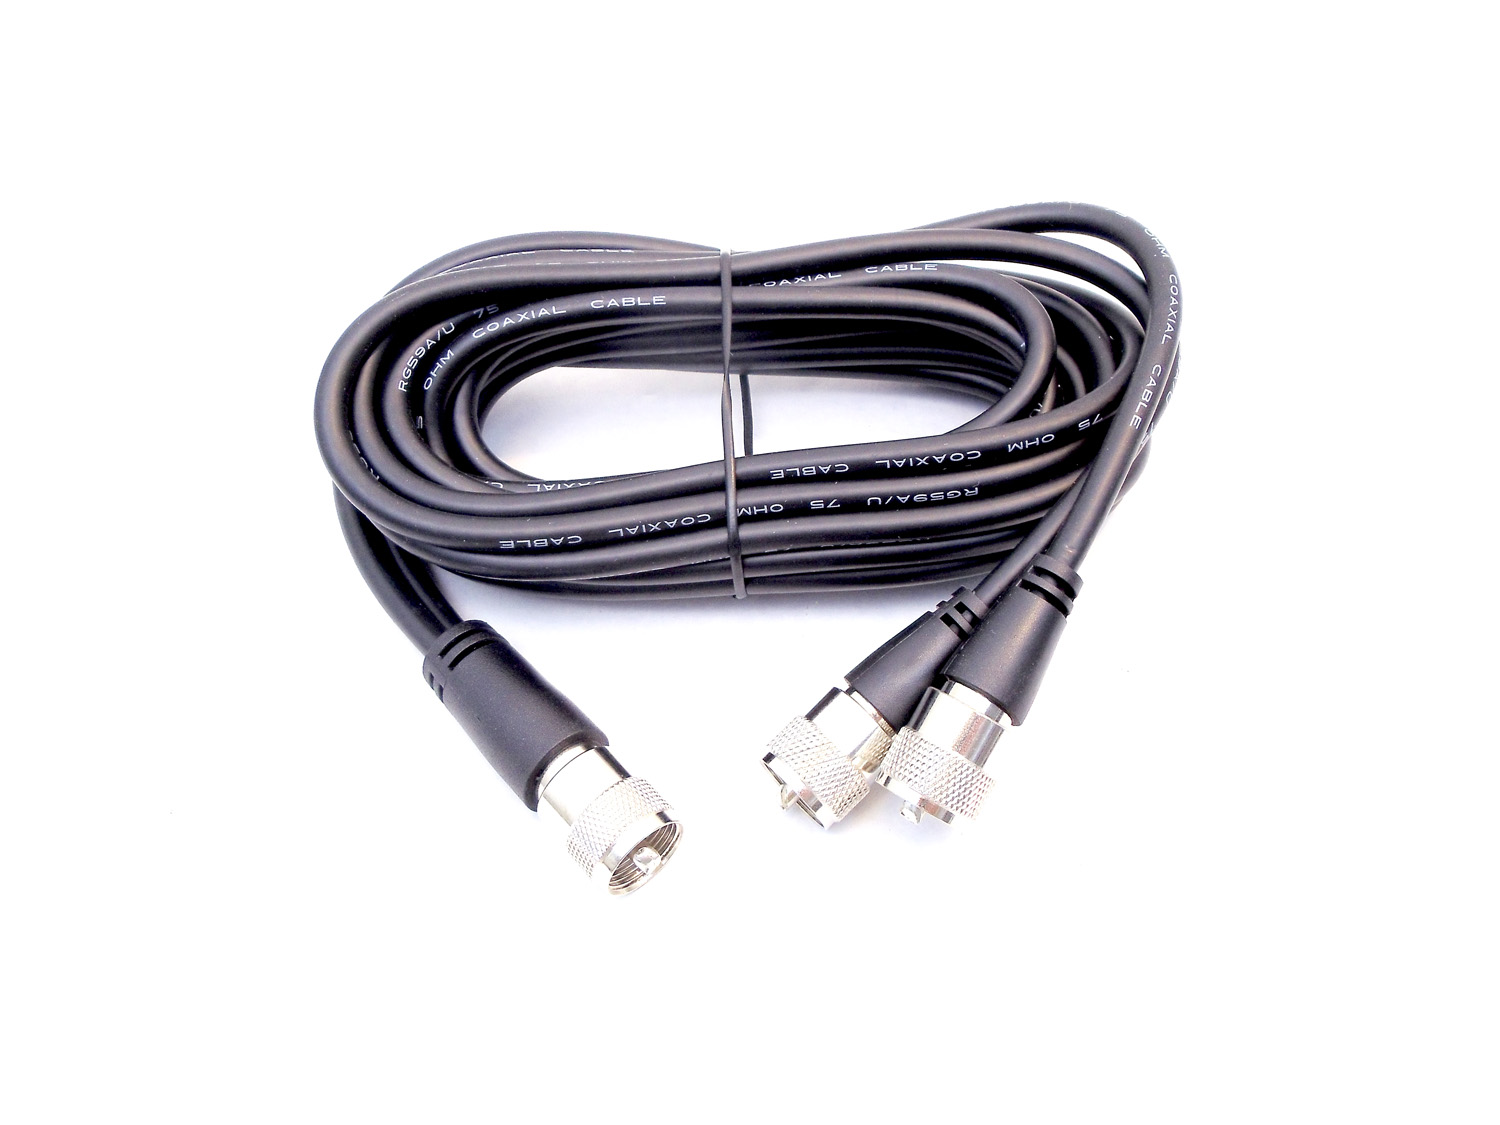 PPP9 - PROCOMM 9' COPHASE HARNESS COAX W/PL259 CONNECTORS